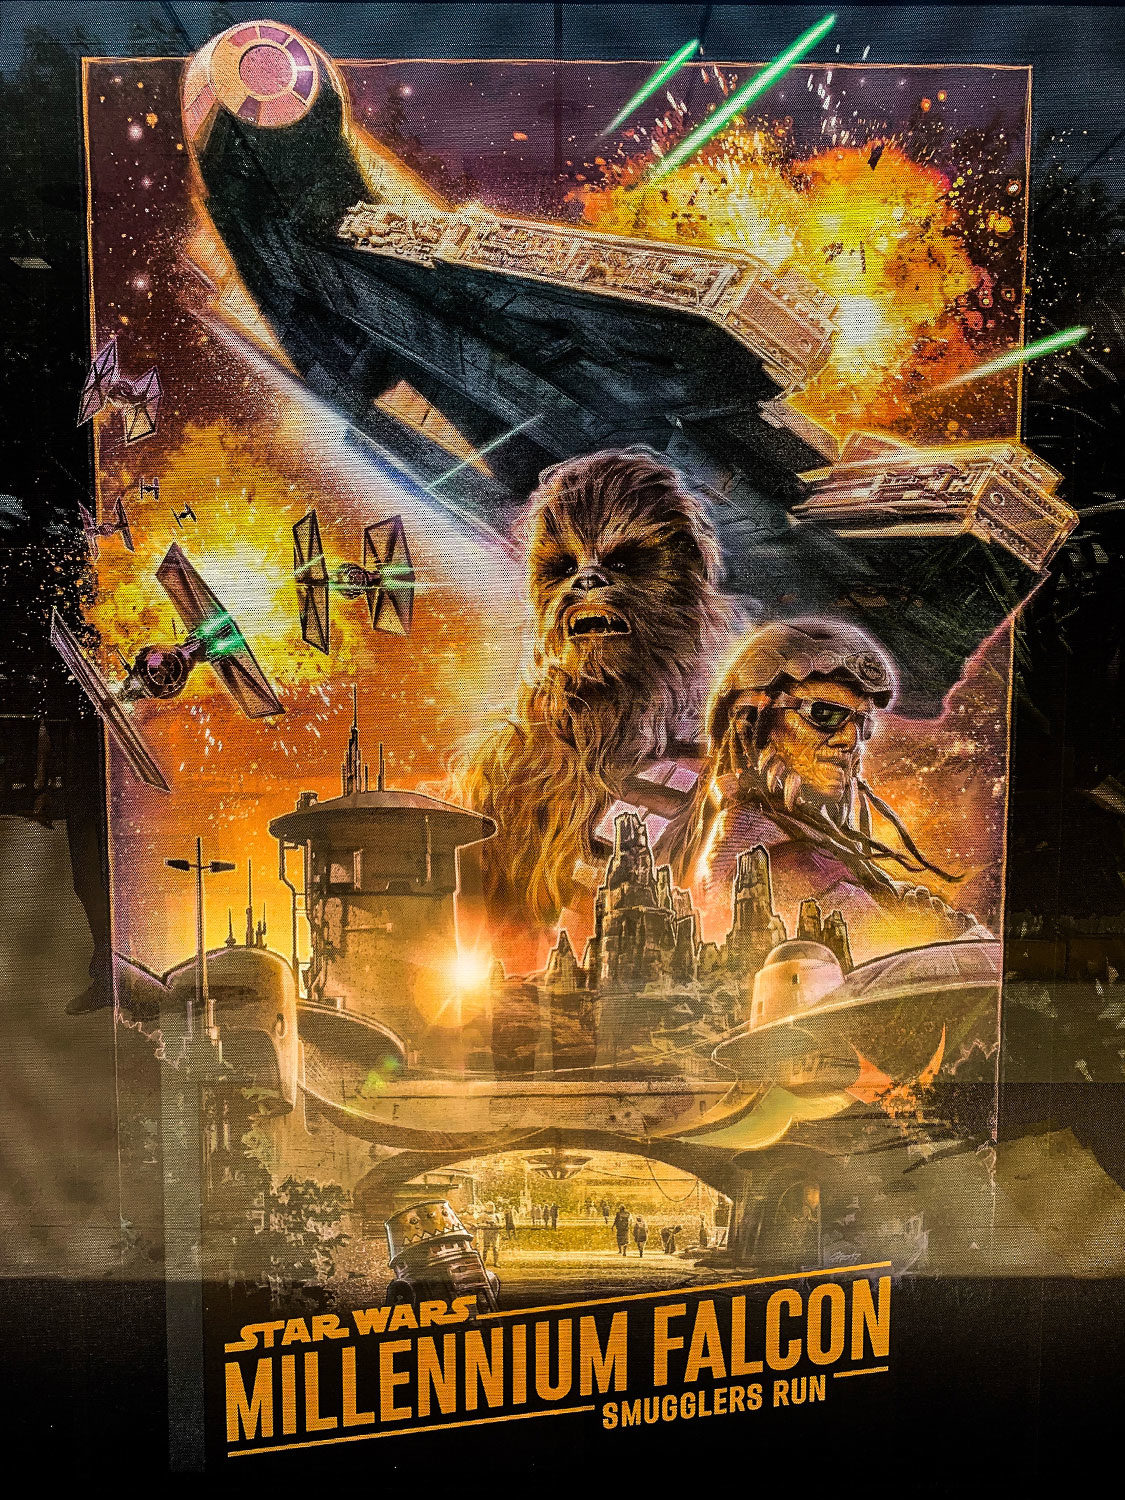 Star Wars: Millennium Falcon: Smugglers Run